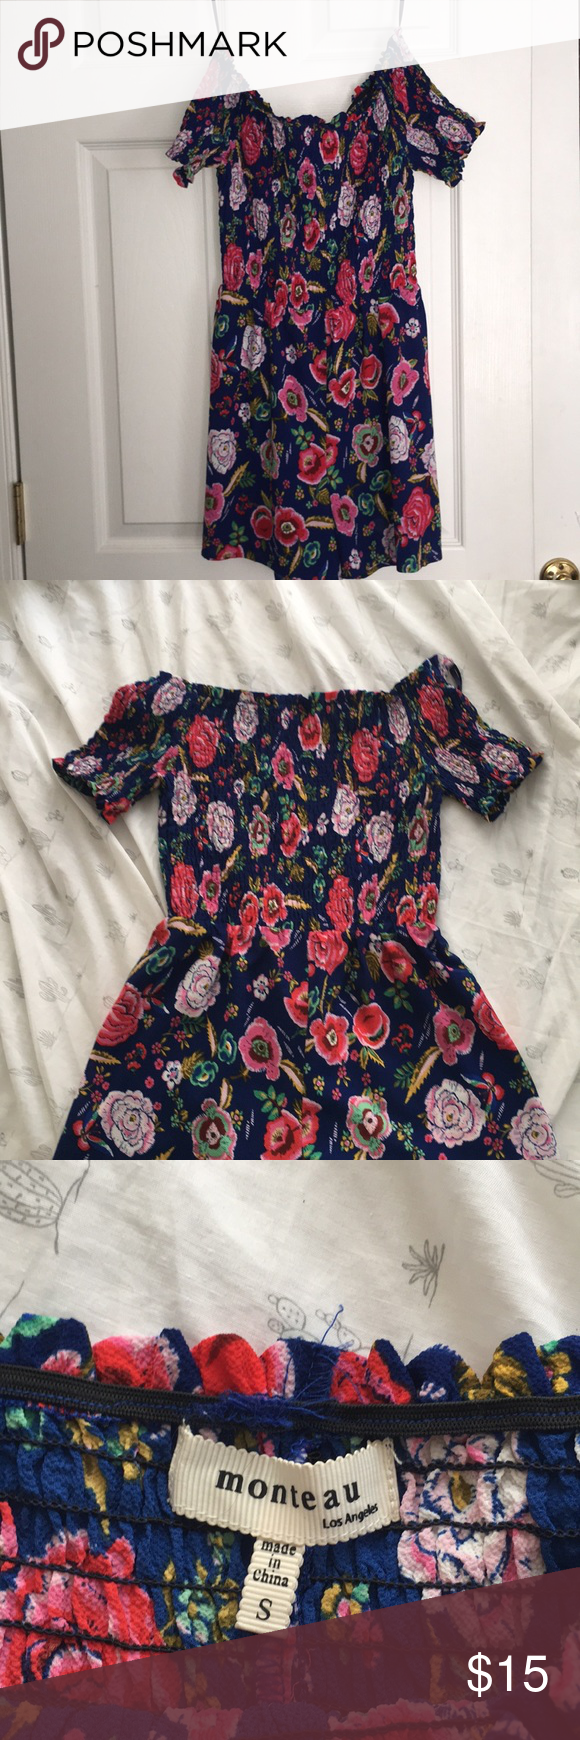 e58b54454daf Small blue off the shoulder floral romper I ve only wore it a few times